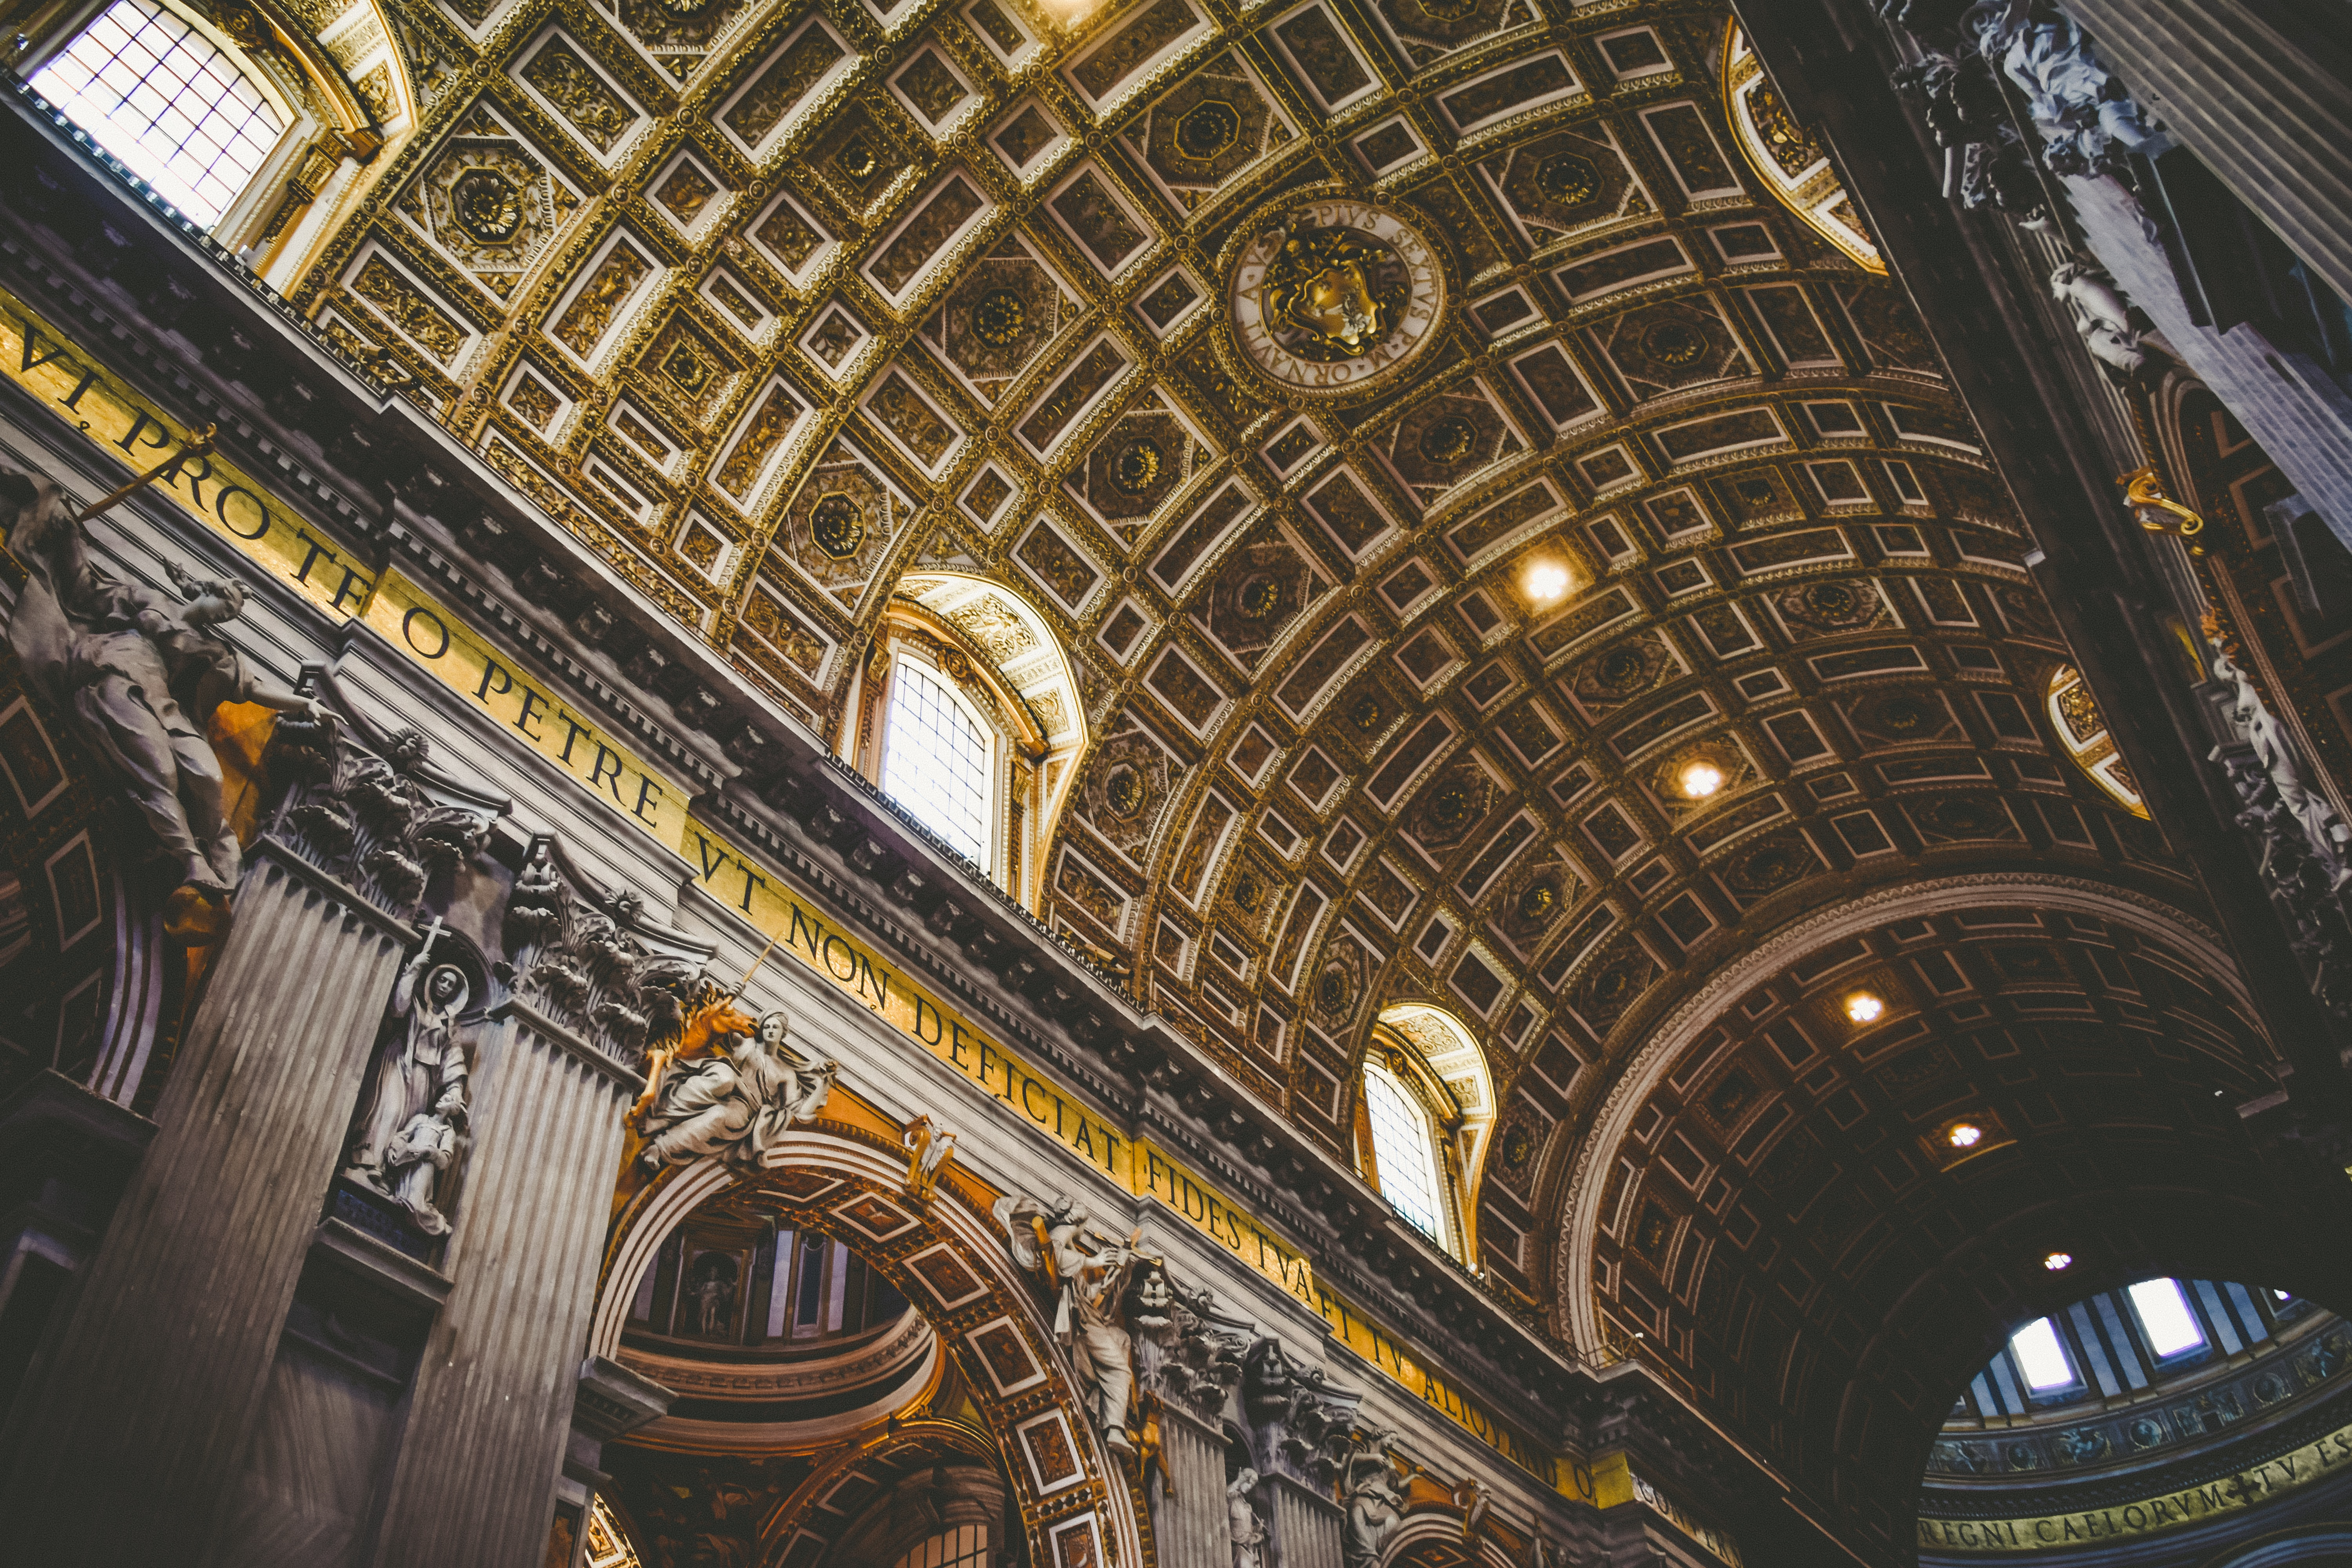 The ornate, gold, carved ceiling in St. Peter's Basilica in Vatican City